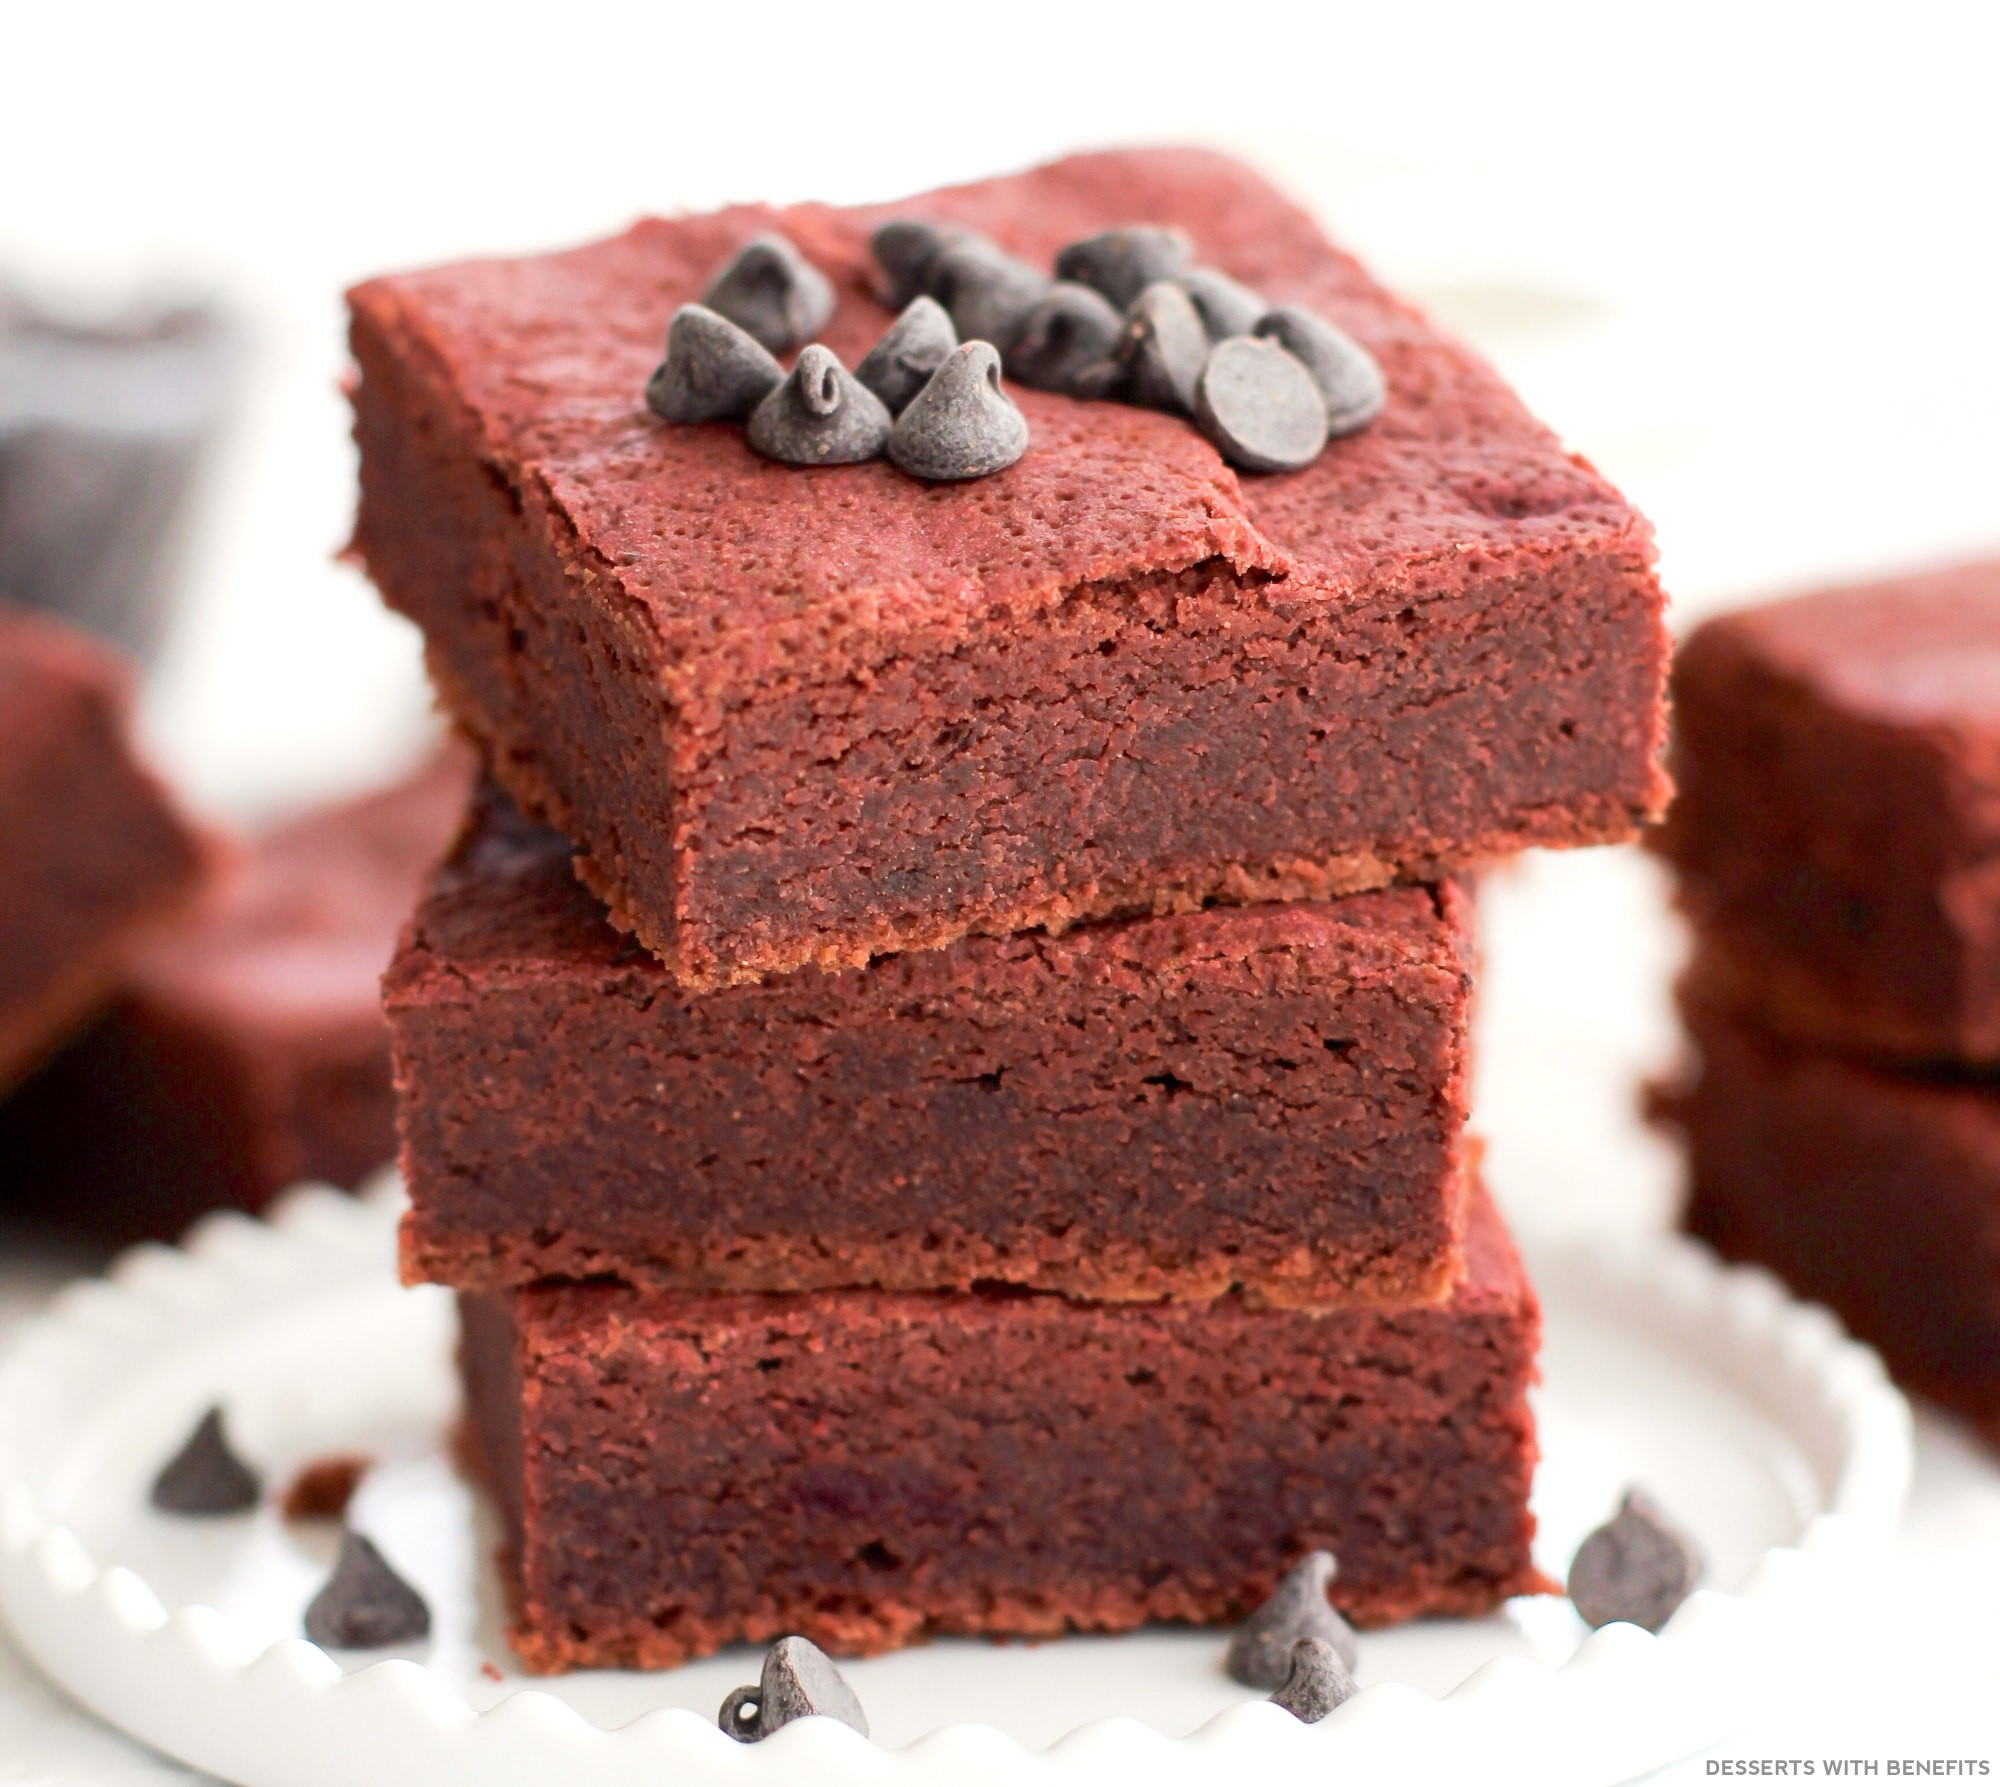 Sugar Free Dairy Free Desserts  Desserts With Benefits Healthy Red Velvet Brownies